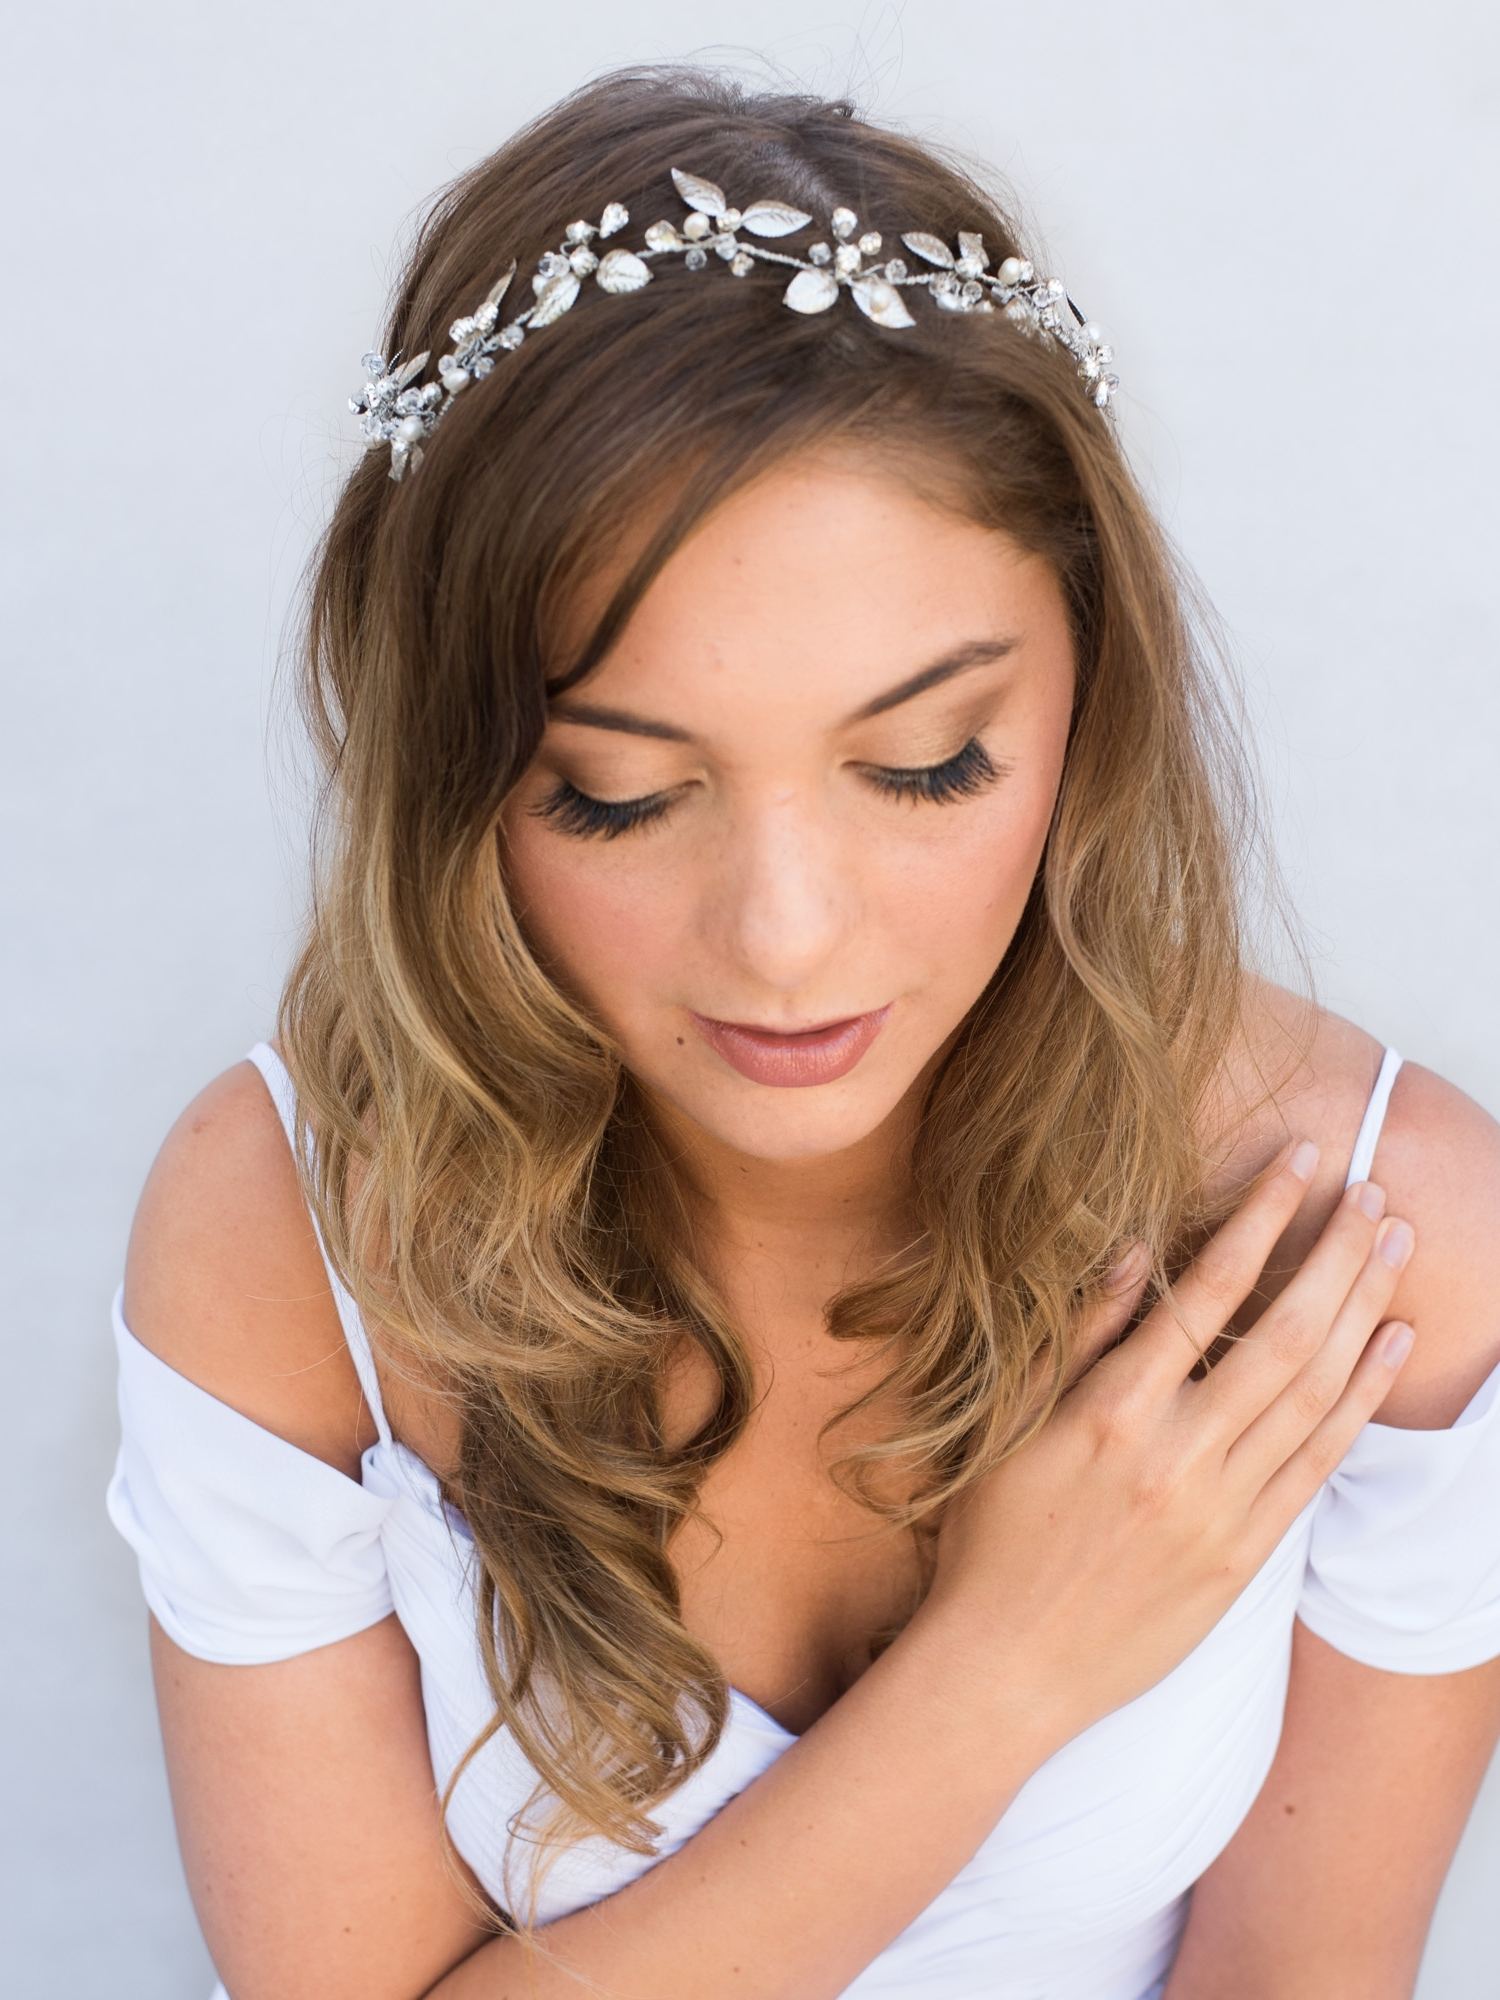 Current Wedding Hairstyles Down With Headband With Regard To Top 10 Tips For Choosing Your Bridal Hair Accessories – Hair Comes (View 4 of 15)